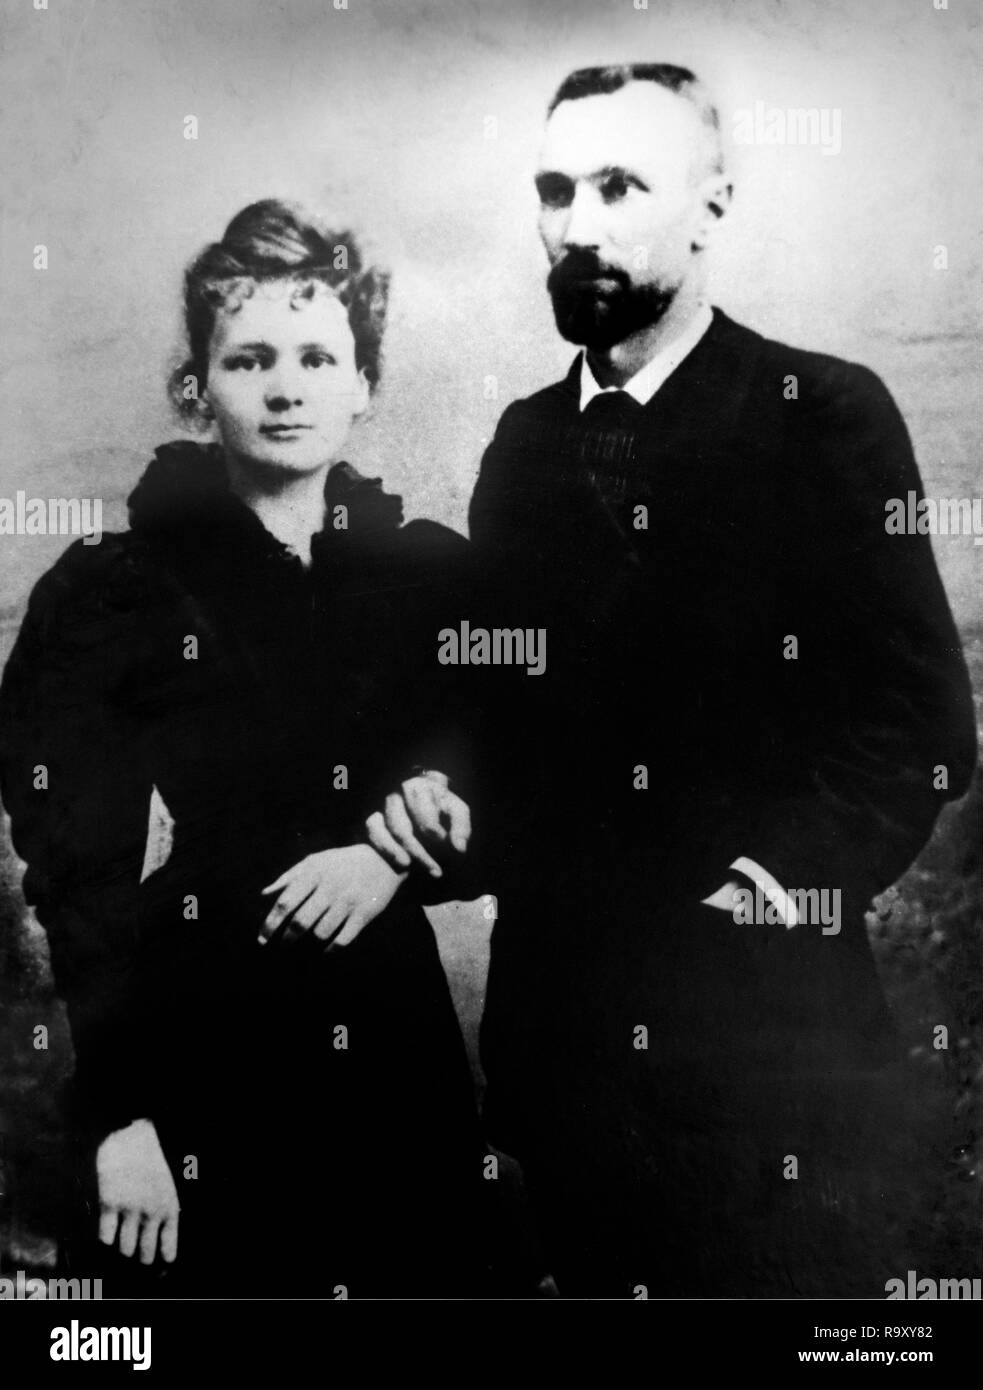 Pierre and Marie Curie. The Nobel prize winning scientist, Marie Skłodowska Curie (1867-1934) and her husband, Pierre Curie (1859-1906). Photo taken in 1895. Stock Photo